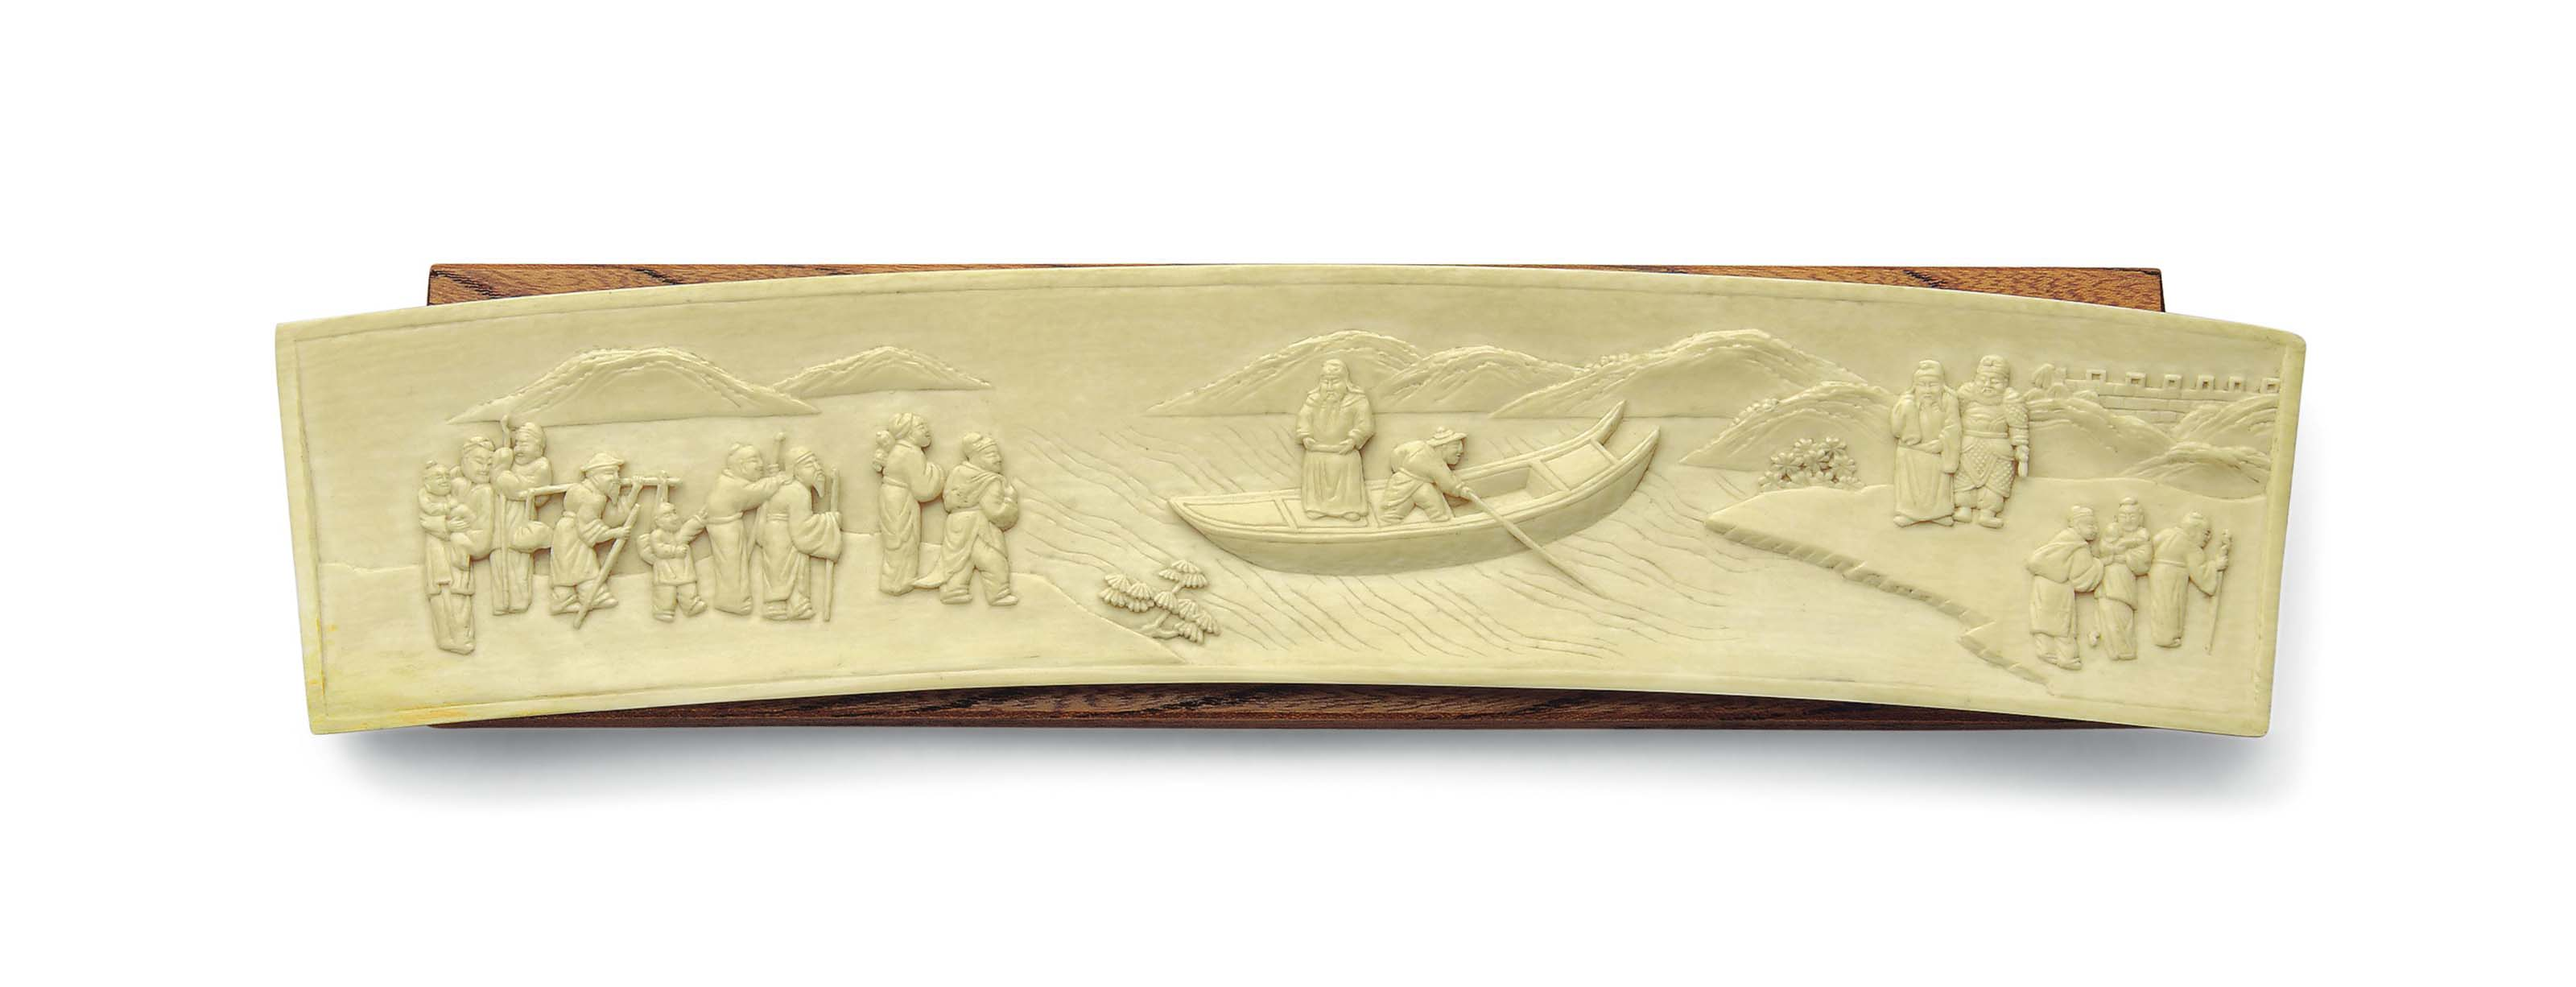 A CARVED IVORY WRIST REST